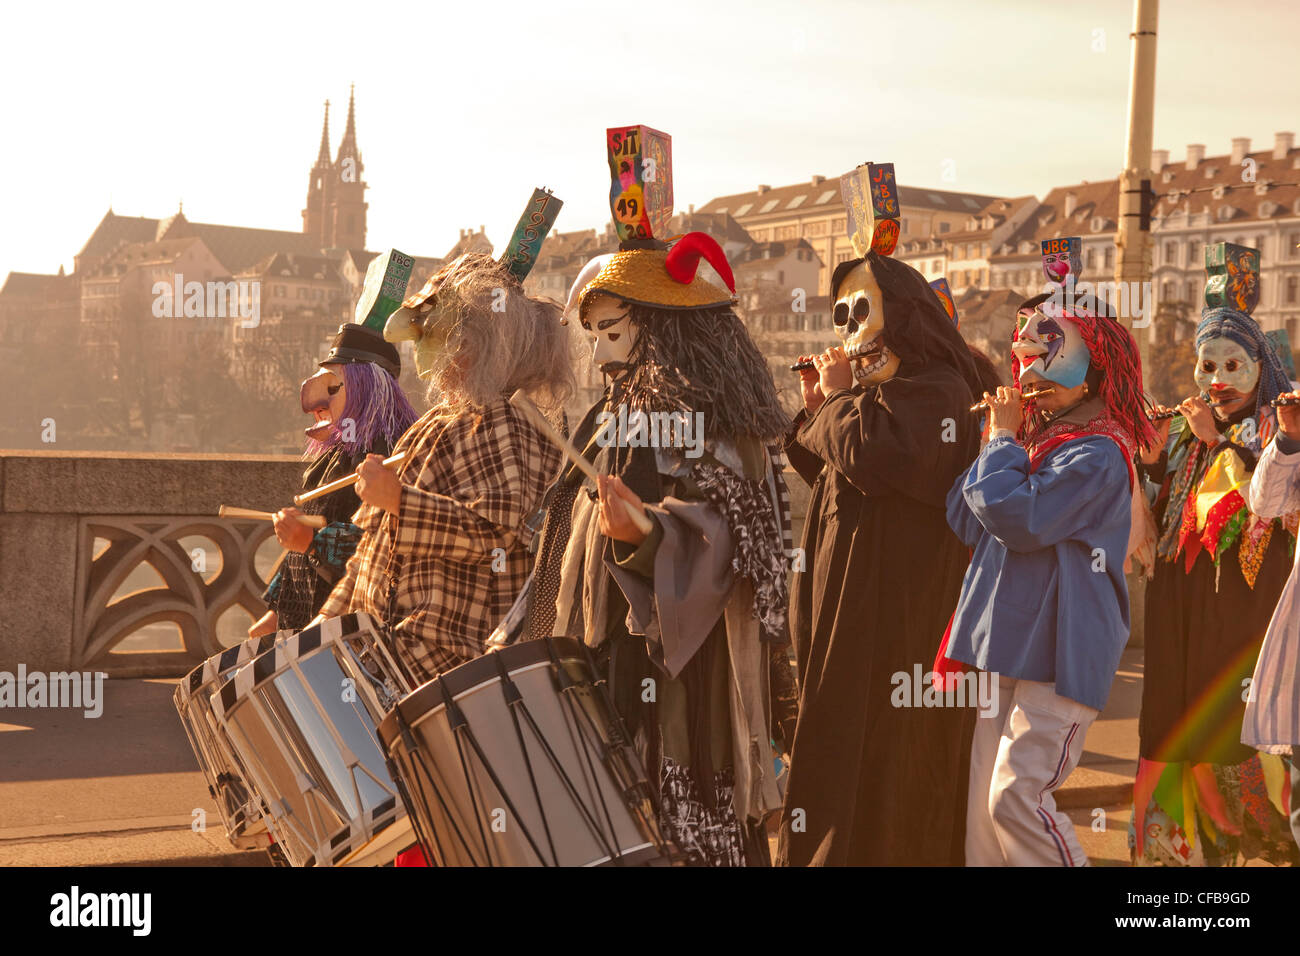 Carnival, carnival, town, city, event, canton, Basel, Switzerland, Europe, town, city, mood, morning, sun, light, Stock Photo